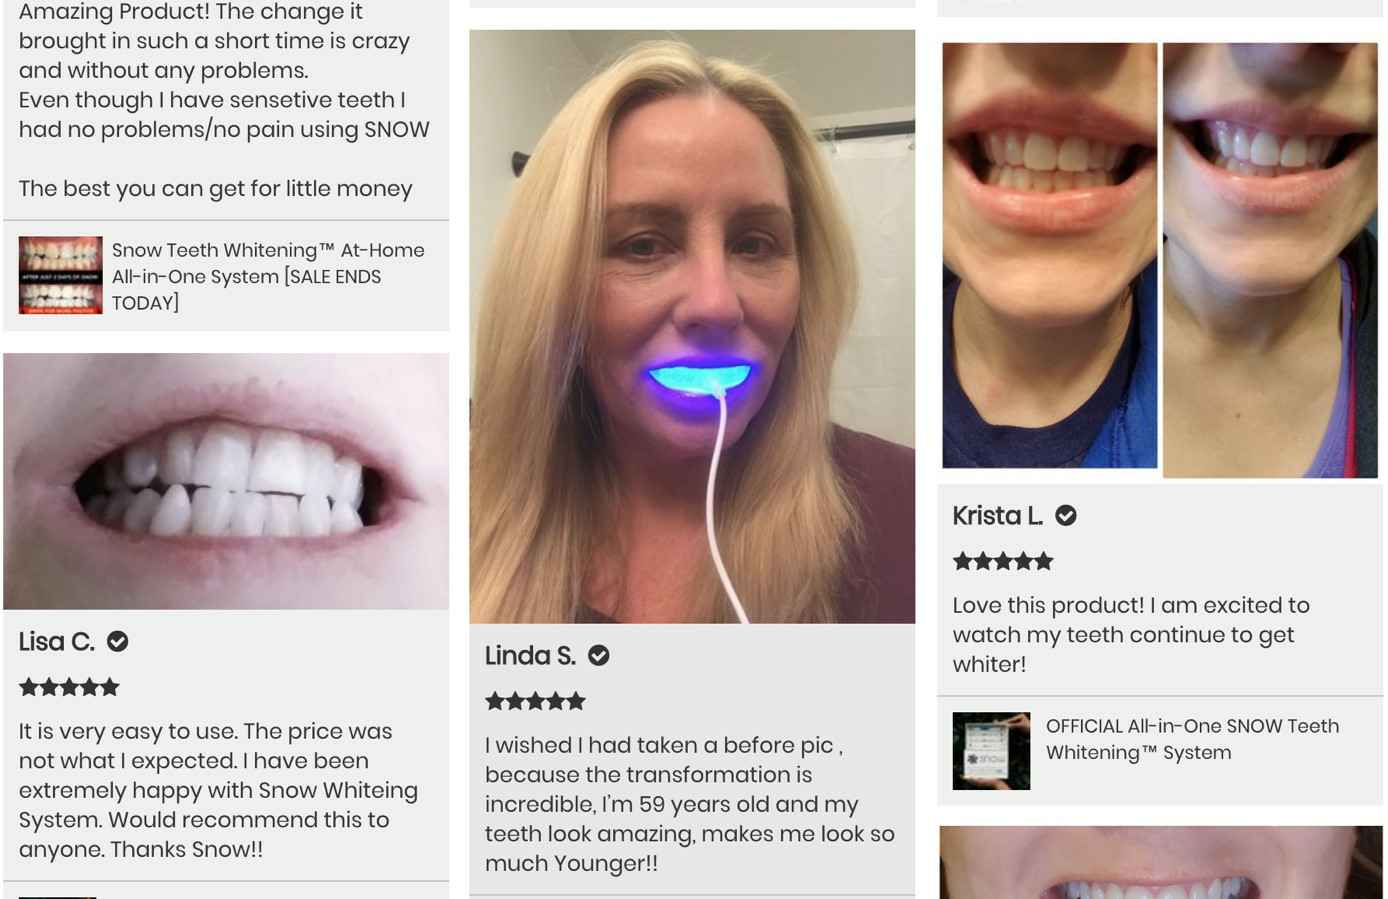 Retail Store Snow Teeth Whitening